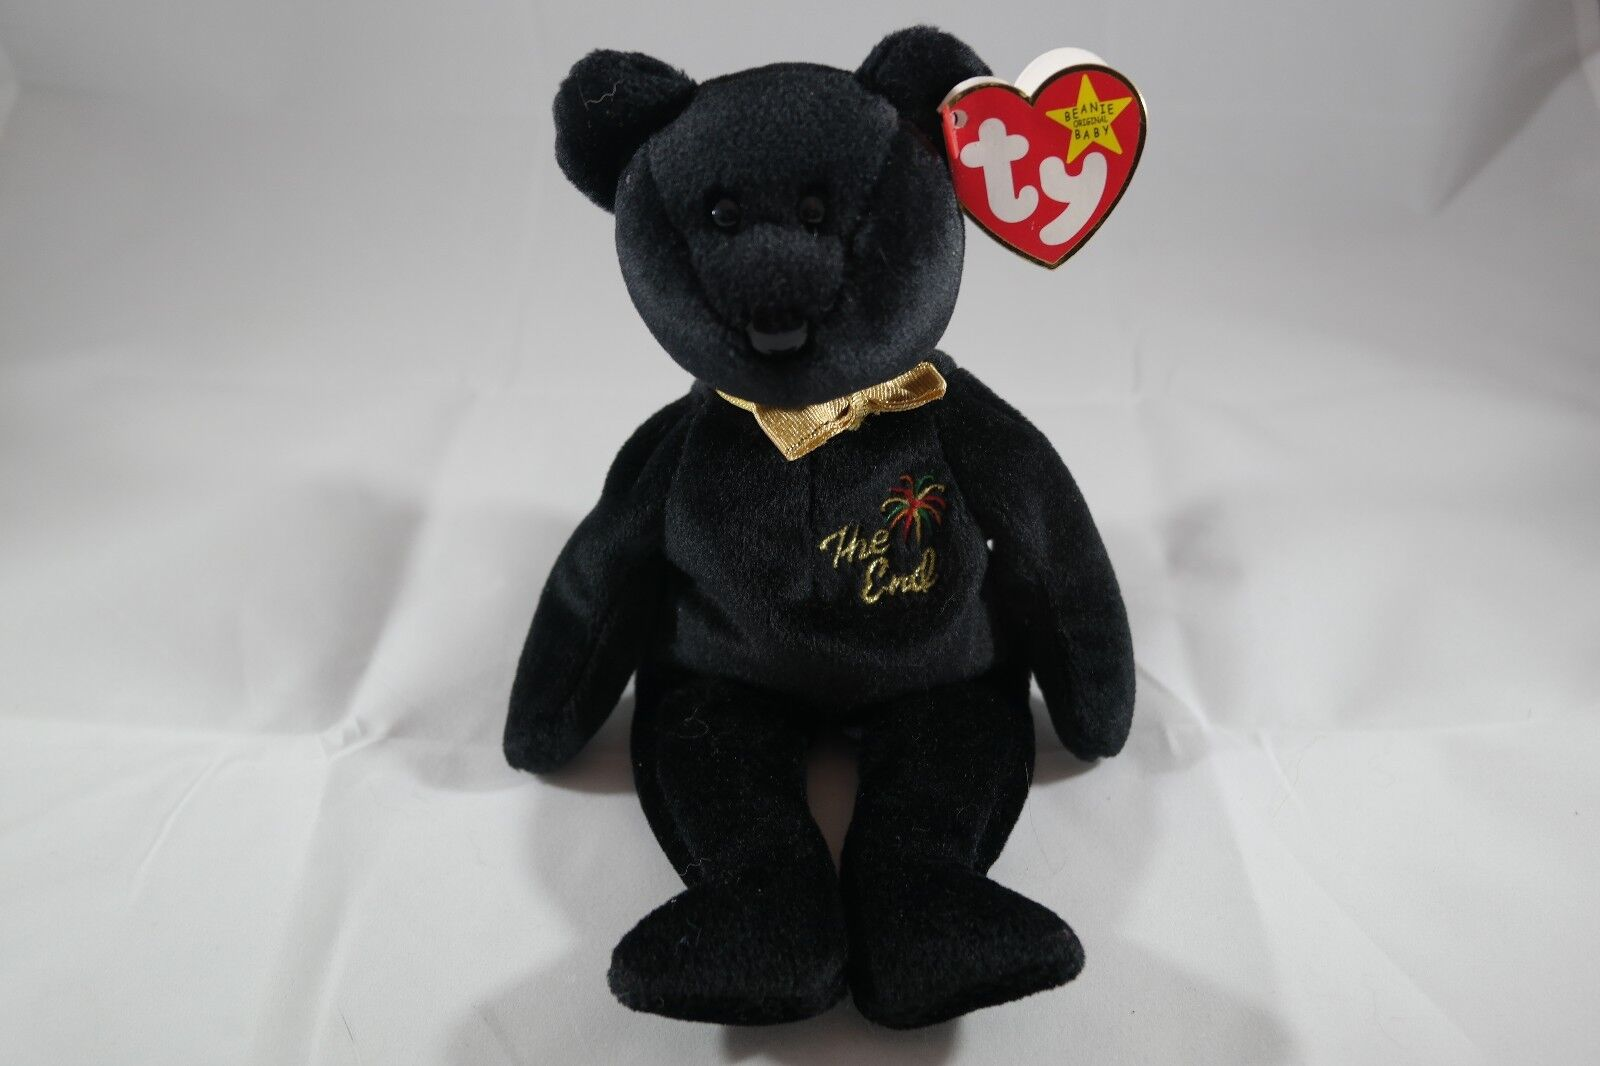 The End  Bear TY Beanie Baby 1999 With RARE TAG Single Flop In Mint Condition